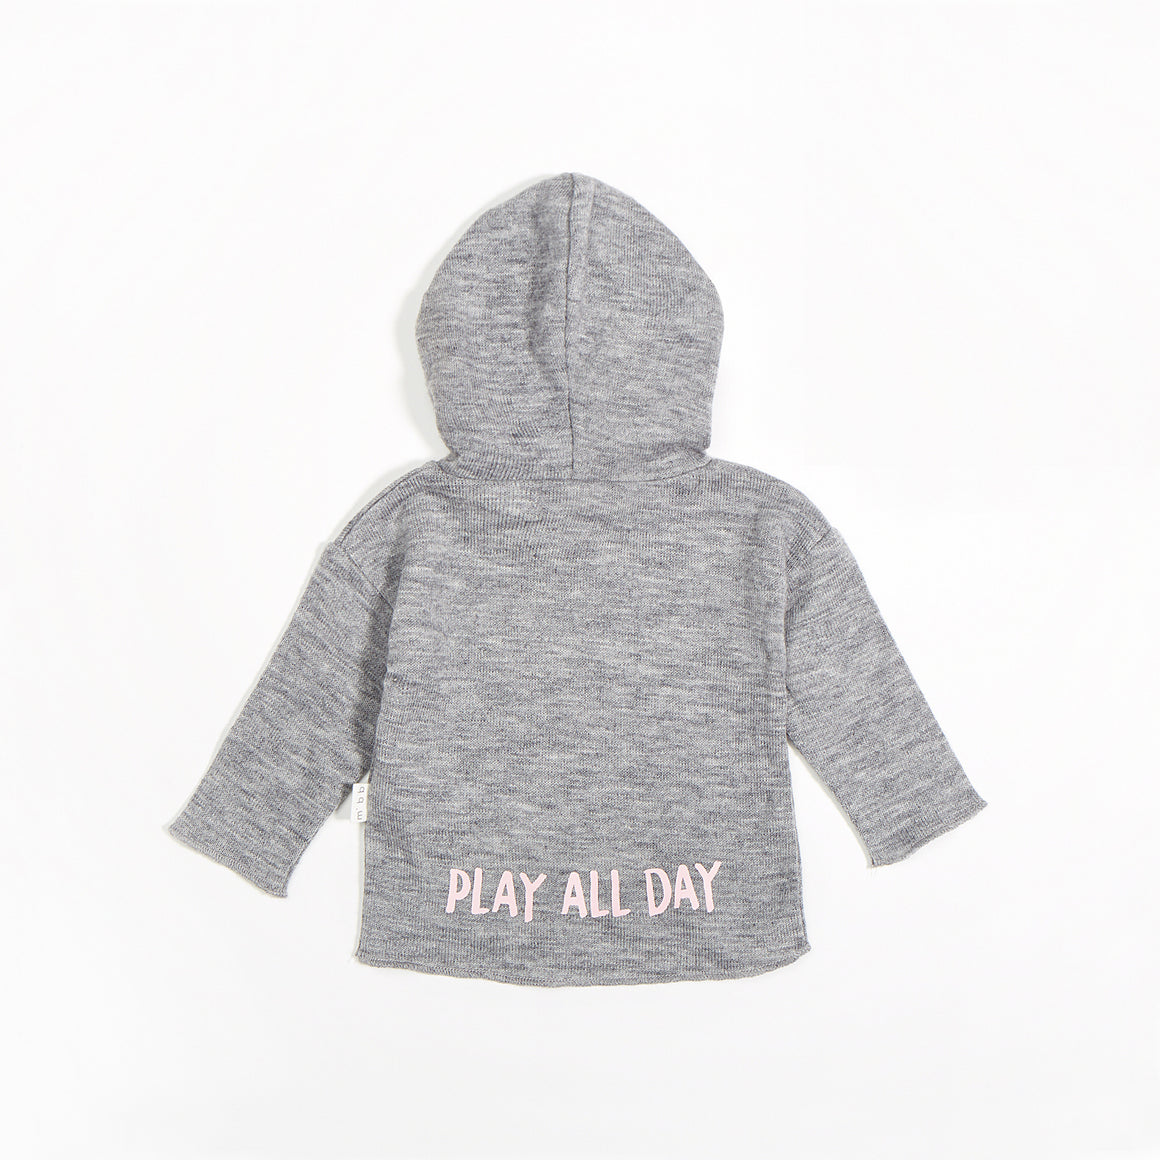 MILES BABY Play All Day Hooded Tee